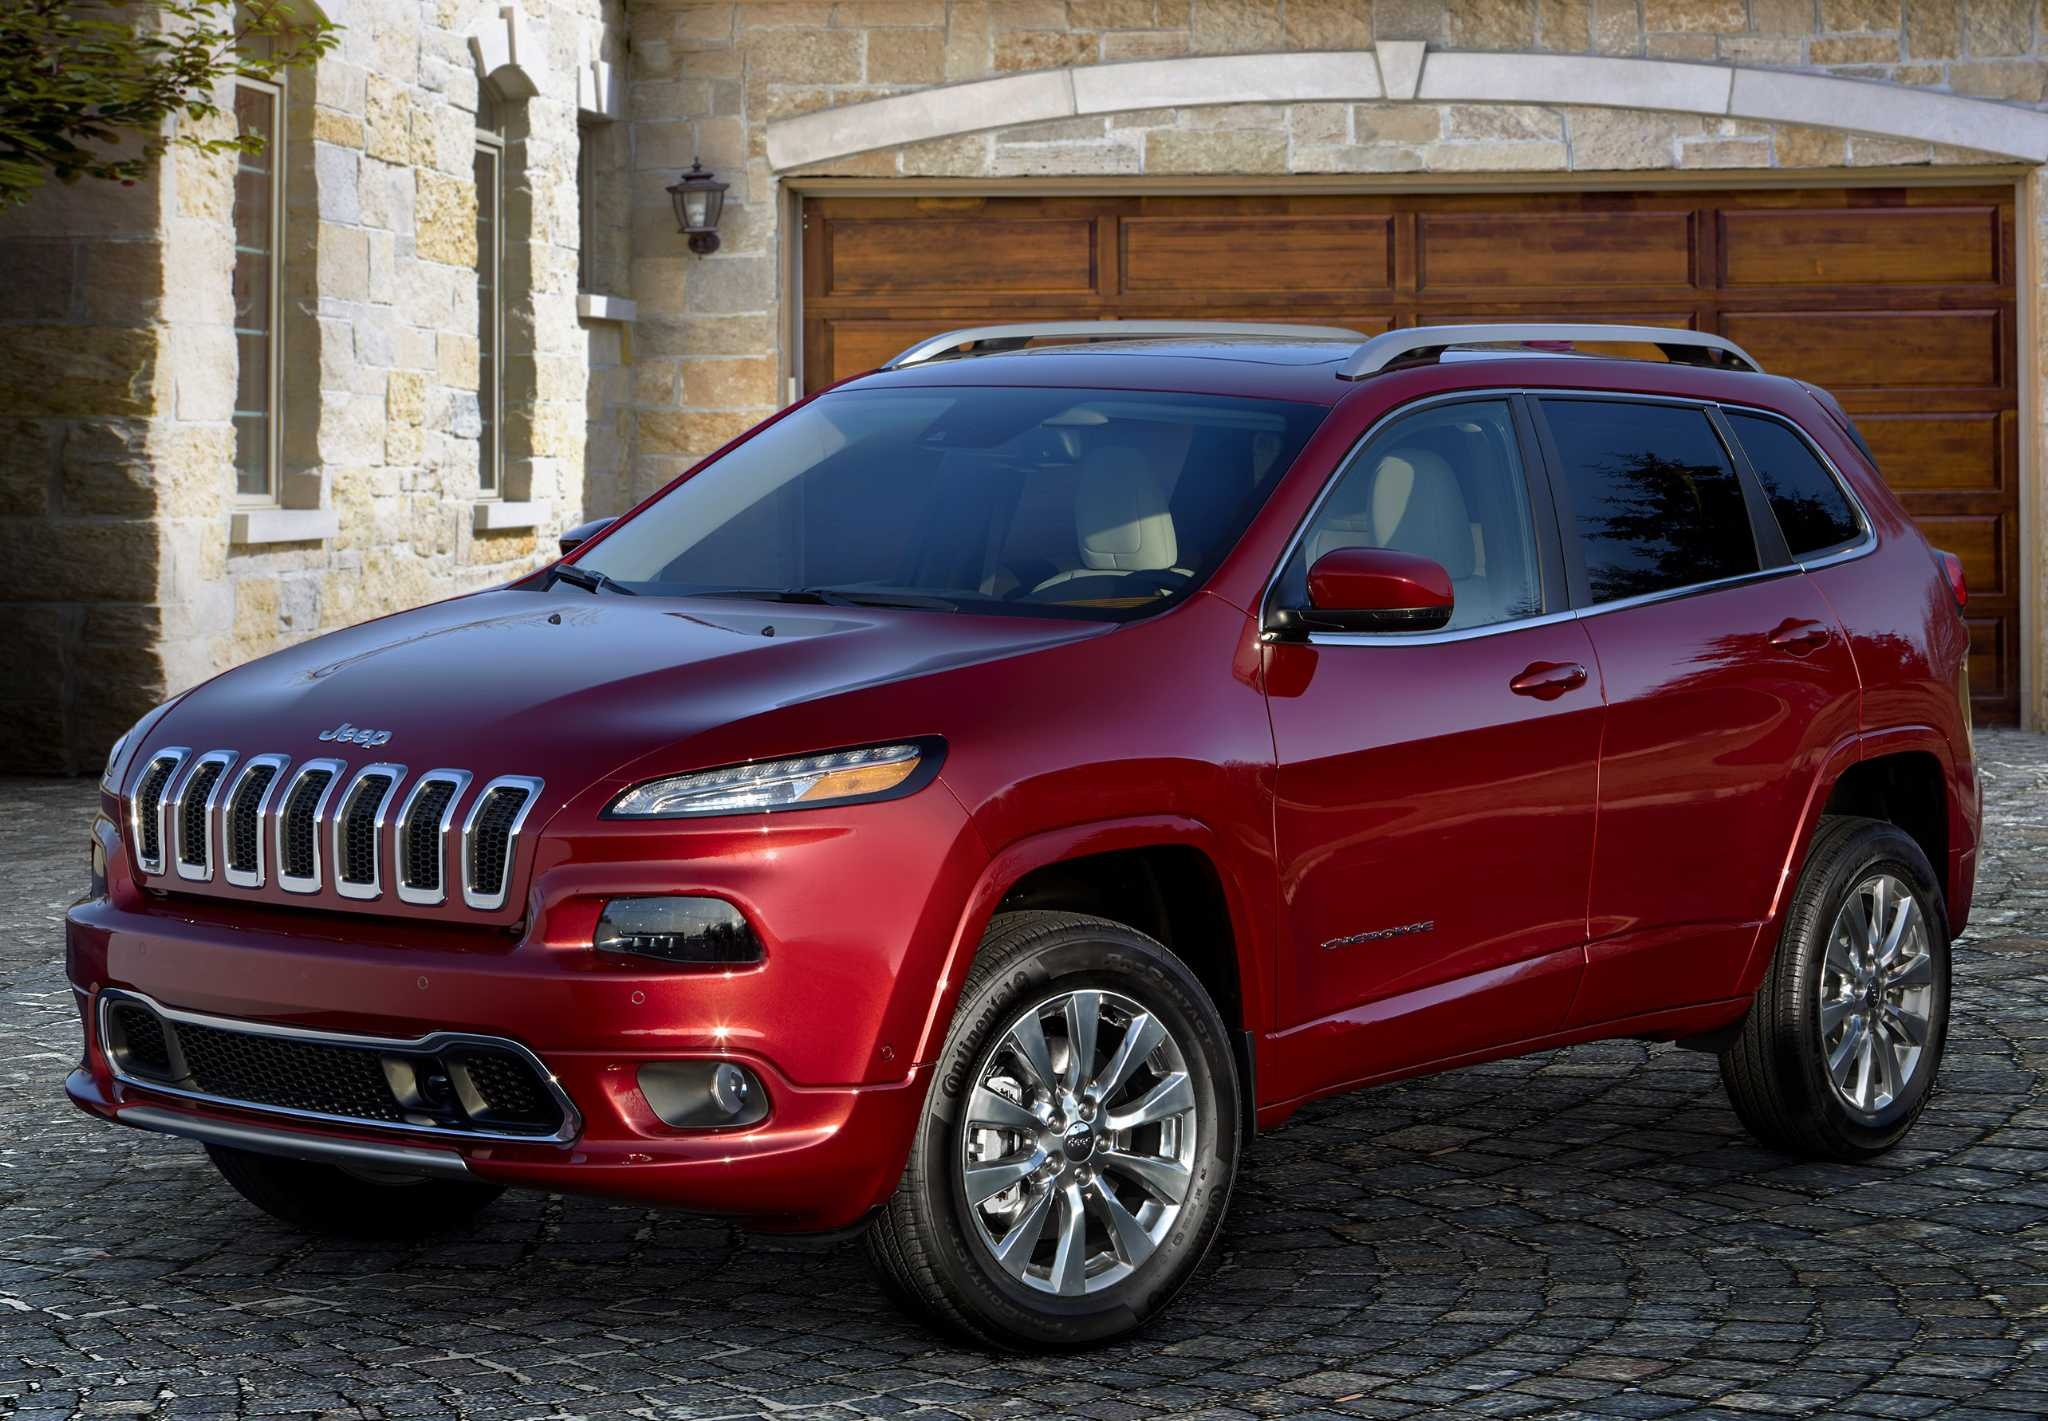 Overland model tops out lineup for Jeep Cherokee SUV